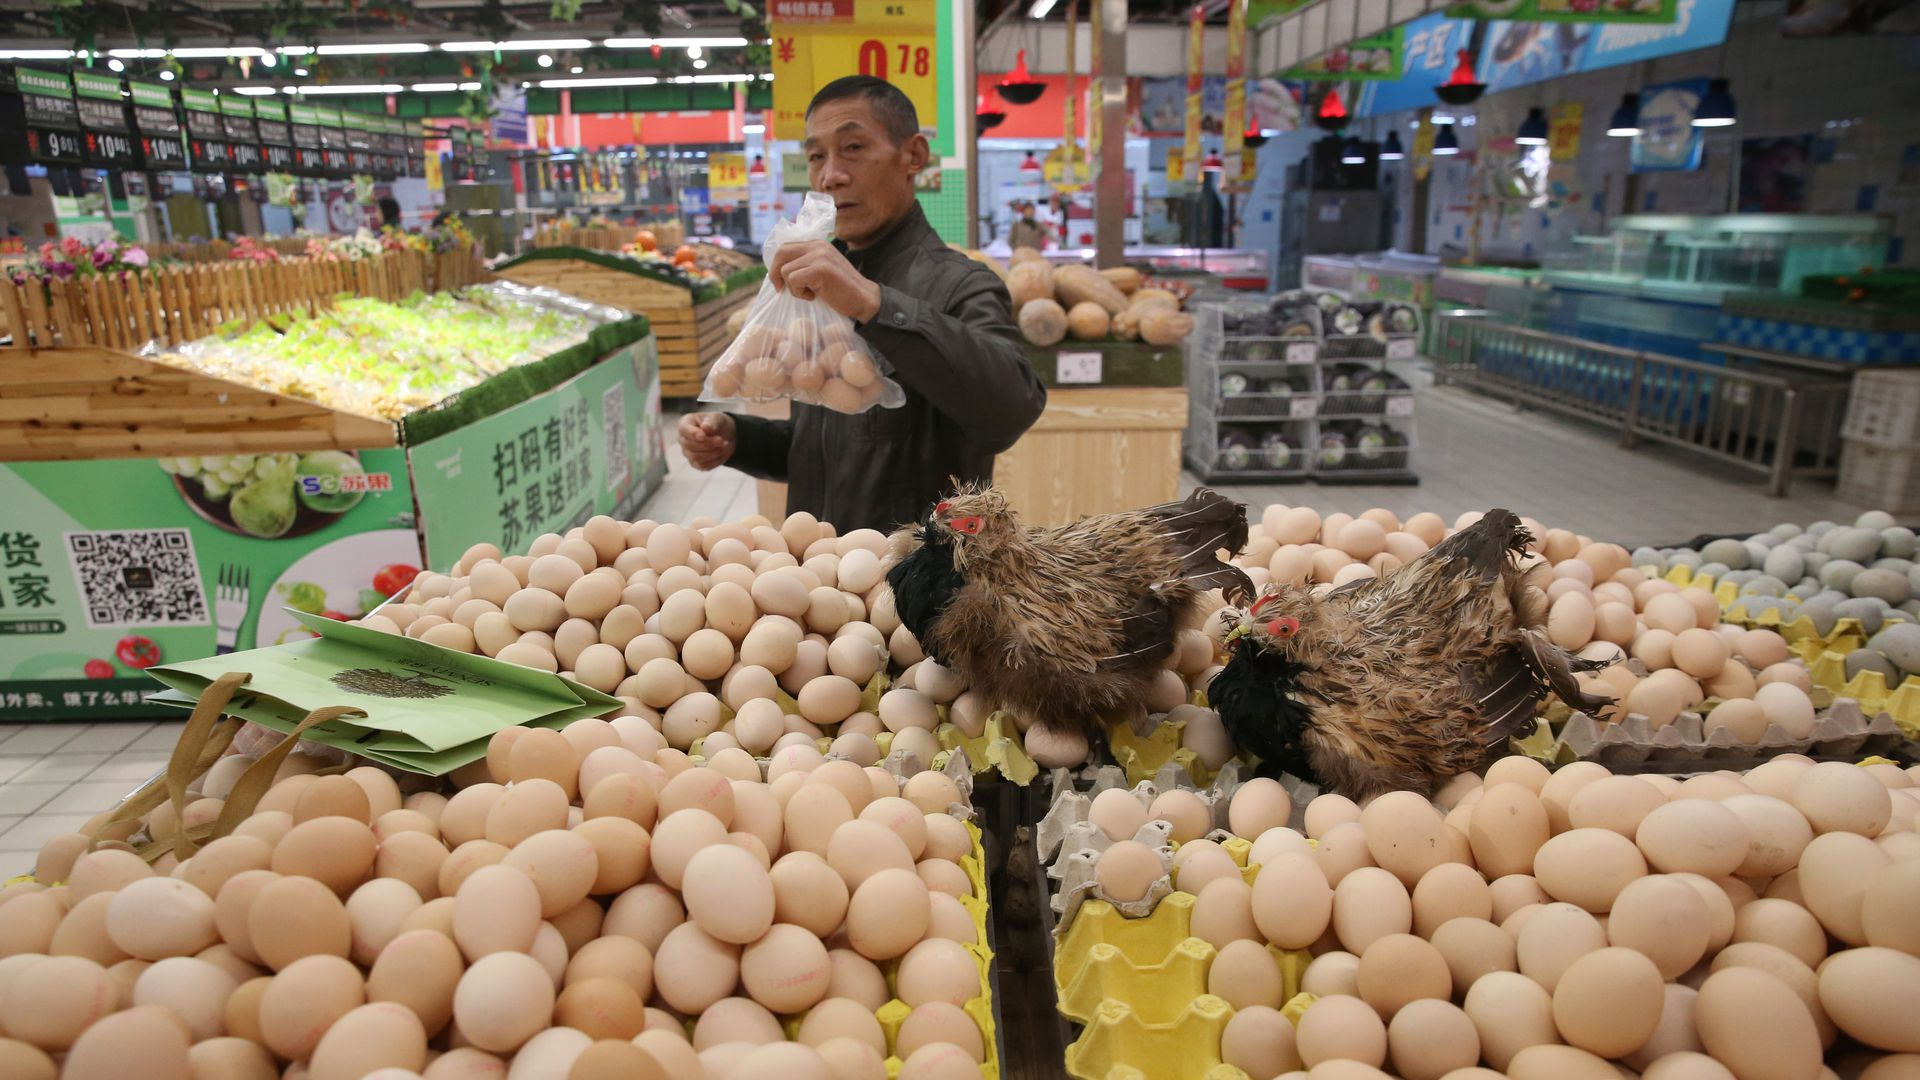 Study: 60% of research on eggs' cholesterol effect is industry-funded